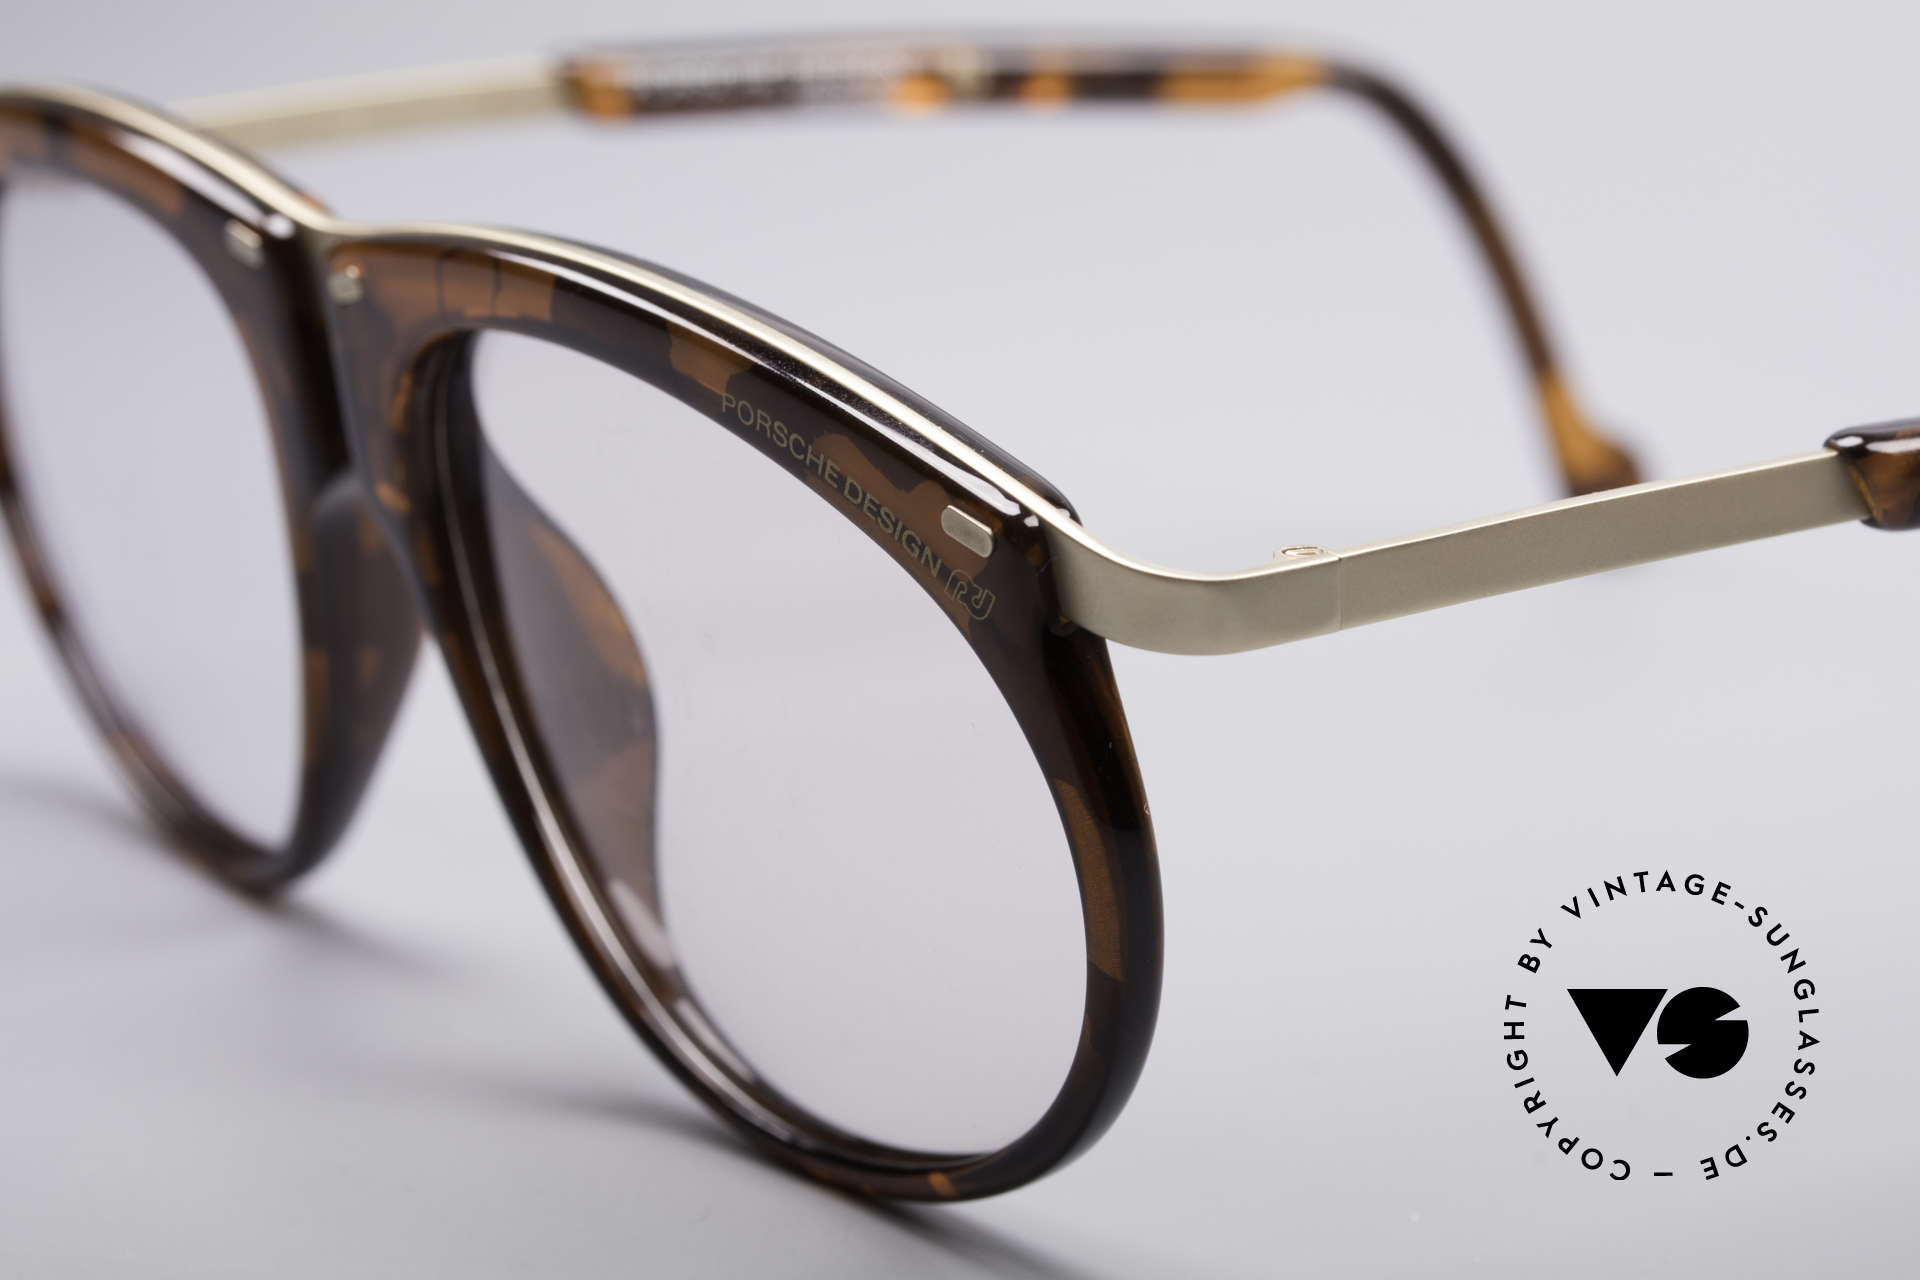 Porsche 5660 Adjustable Vintage Frame, great combination of materials, colors and shapes, Made for Men